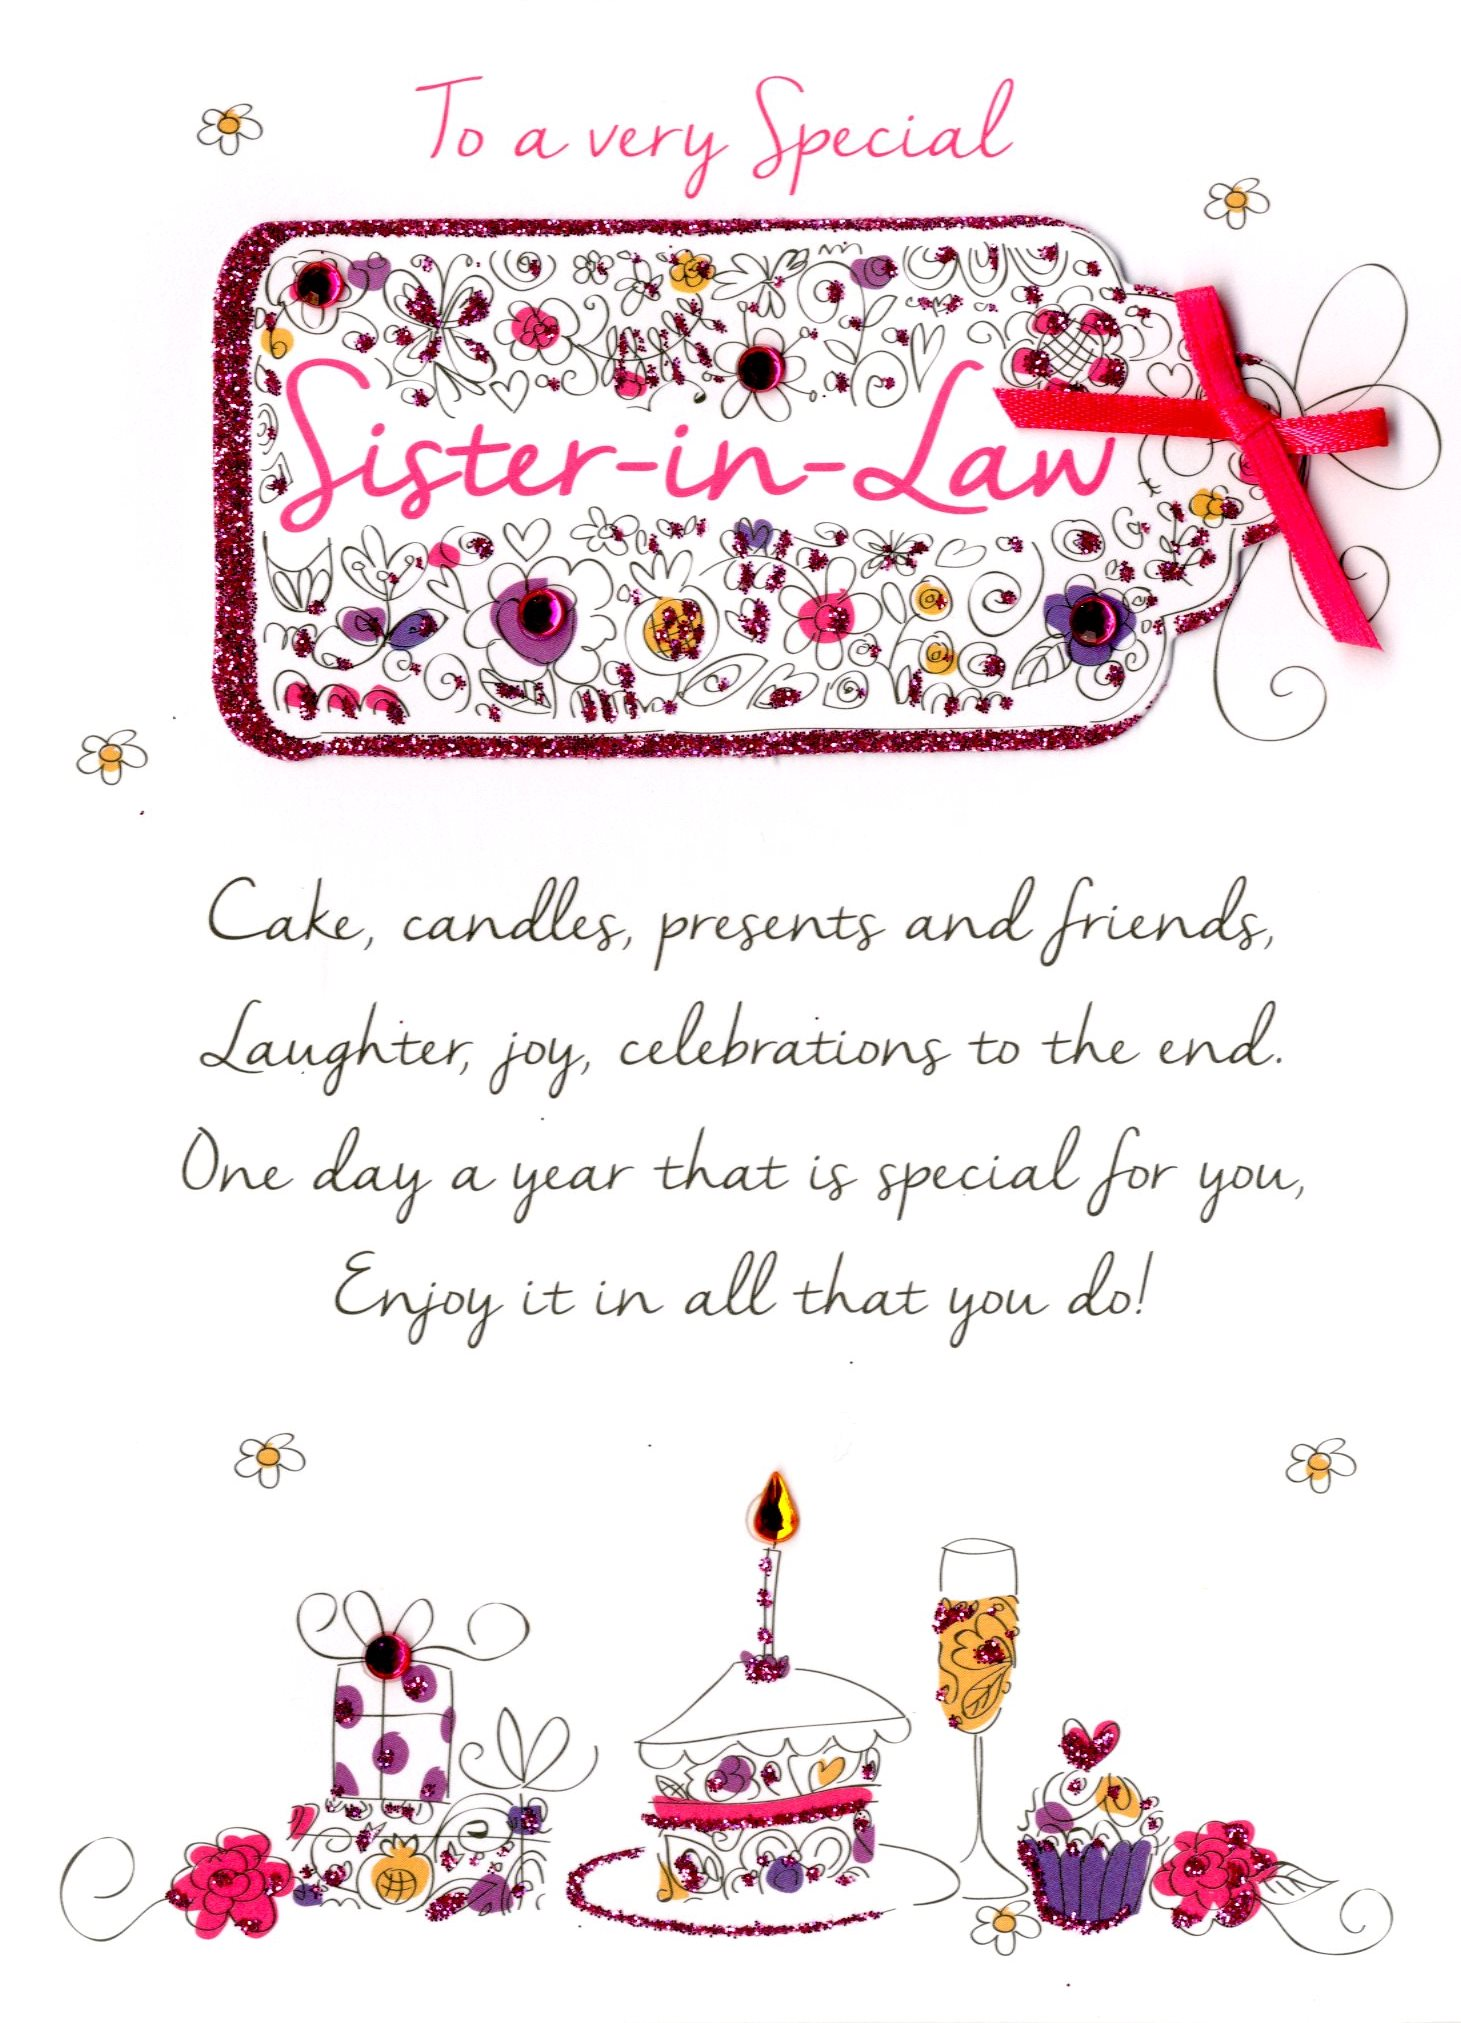 Special sister in law birthday greeting card cards love kates special sister in law birthday greeting card m4hsunfo